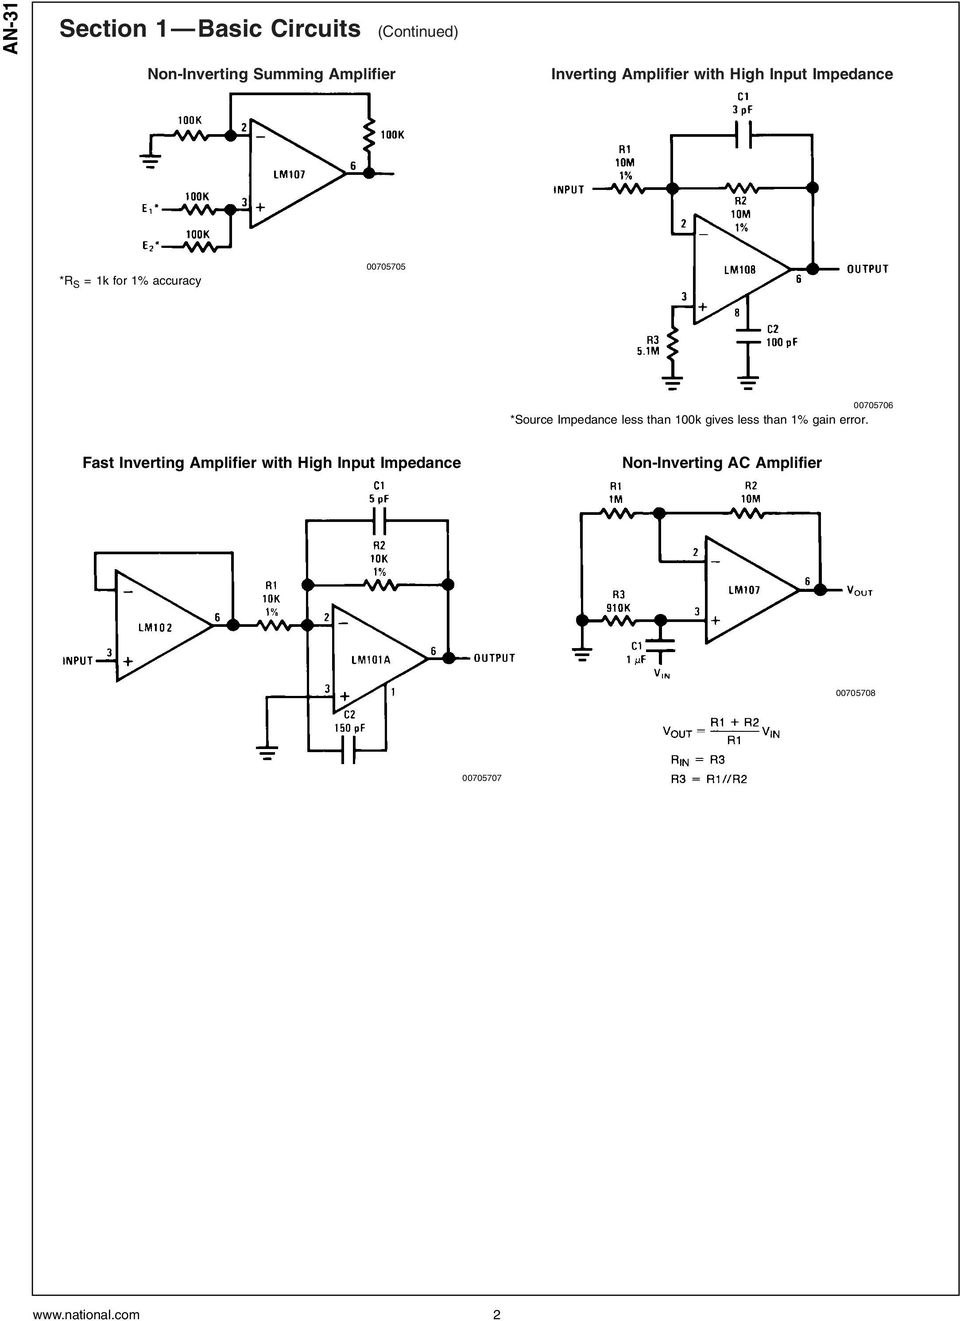 Op Amp Circuit Collection Pdf Sine Wave To Ttl Converter Diagram Source Impedance Less Than 100k Gives 1 Gain Error